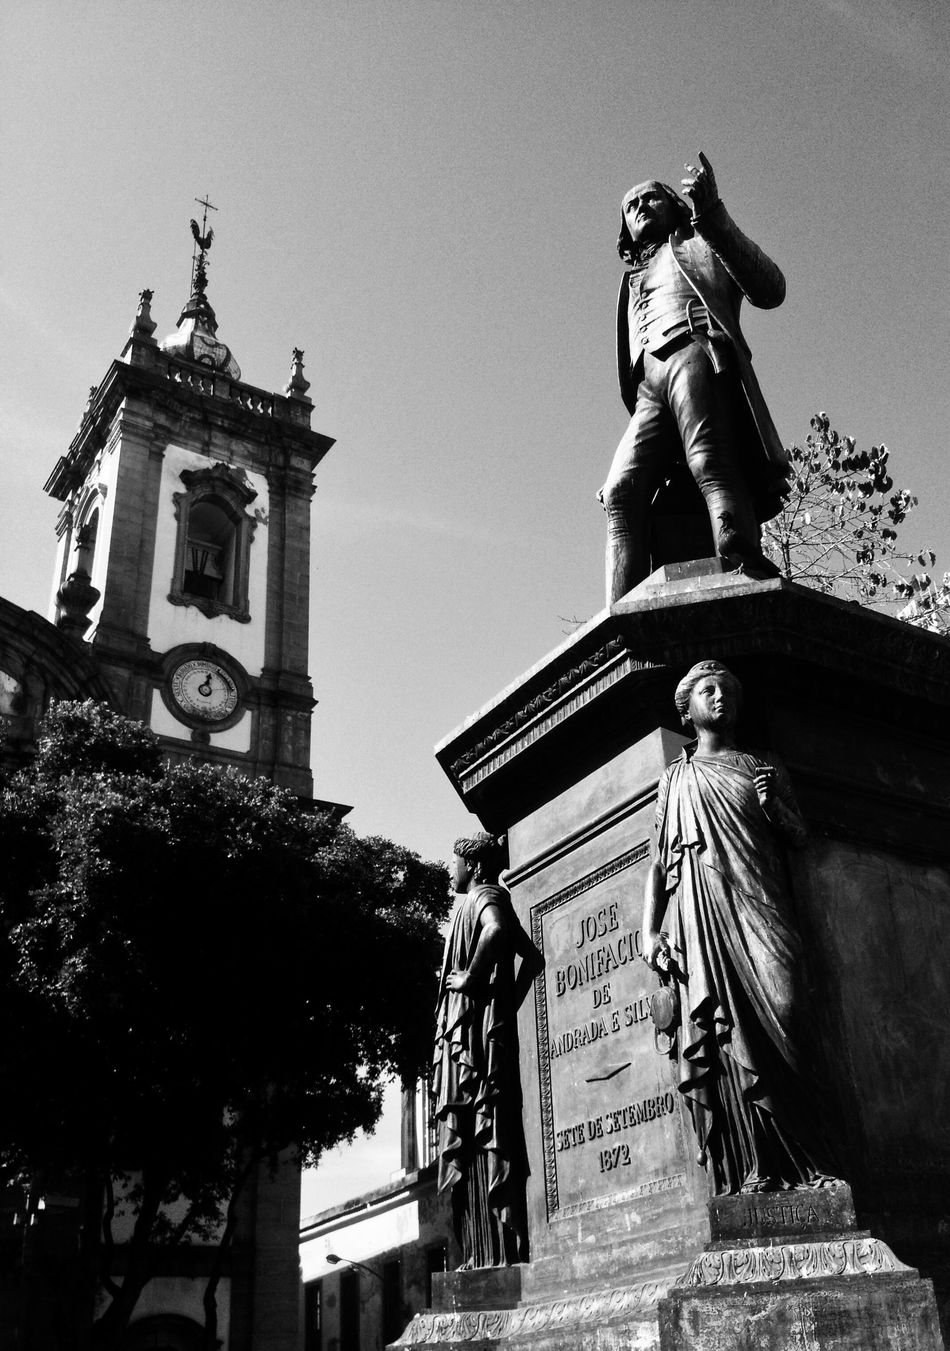 Streetphotography Blackandwhite Photography Rio De Janeiro IPhoneography Statue Human Representation Low Angle View Male Likeness Architecture Art And Craft Religion Built Structure Spirituality Place Of Worship Outdoors Building Exterior History Sky Day Travel Destinations Tree Clear Sky No People